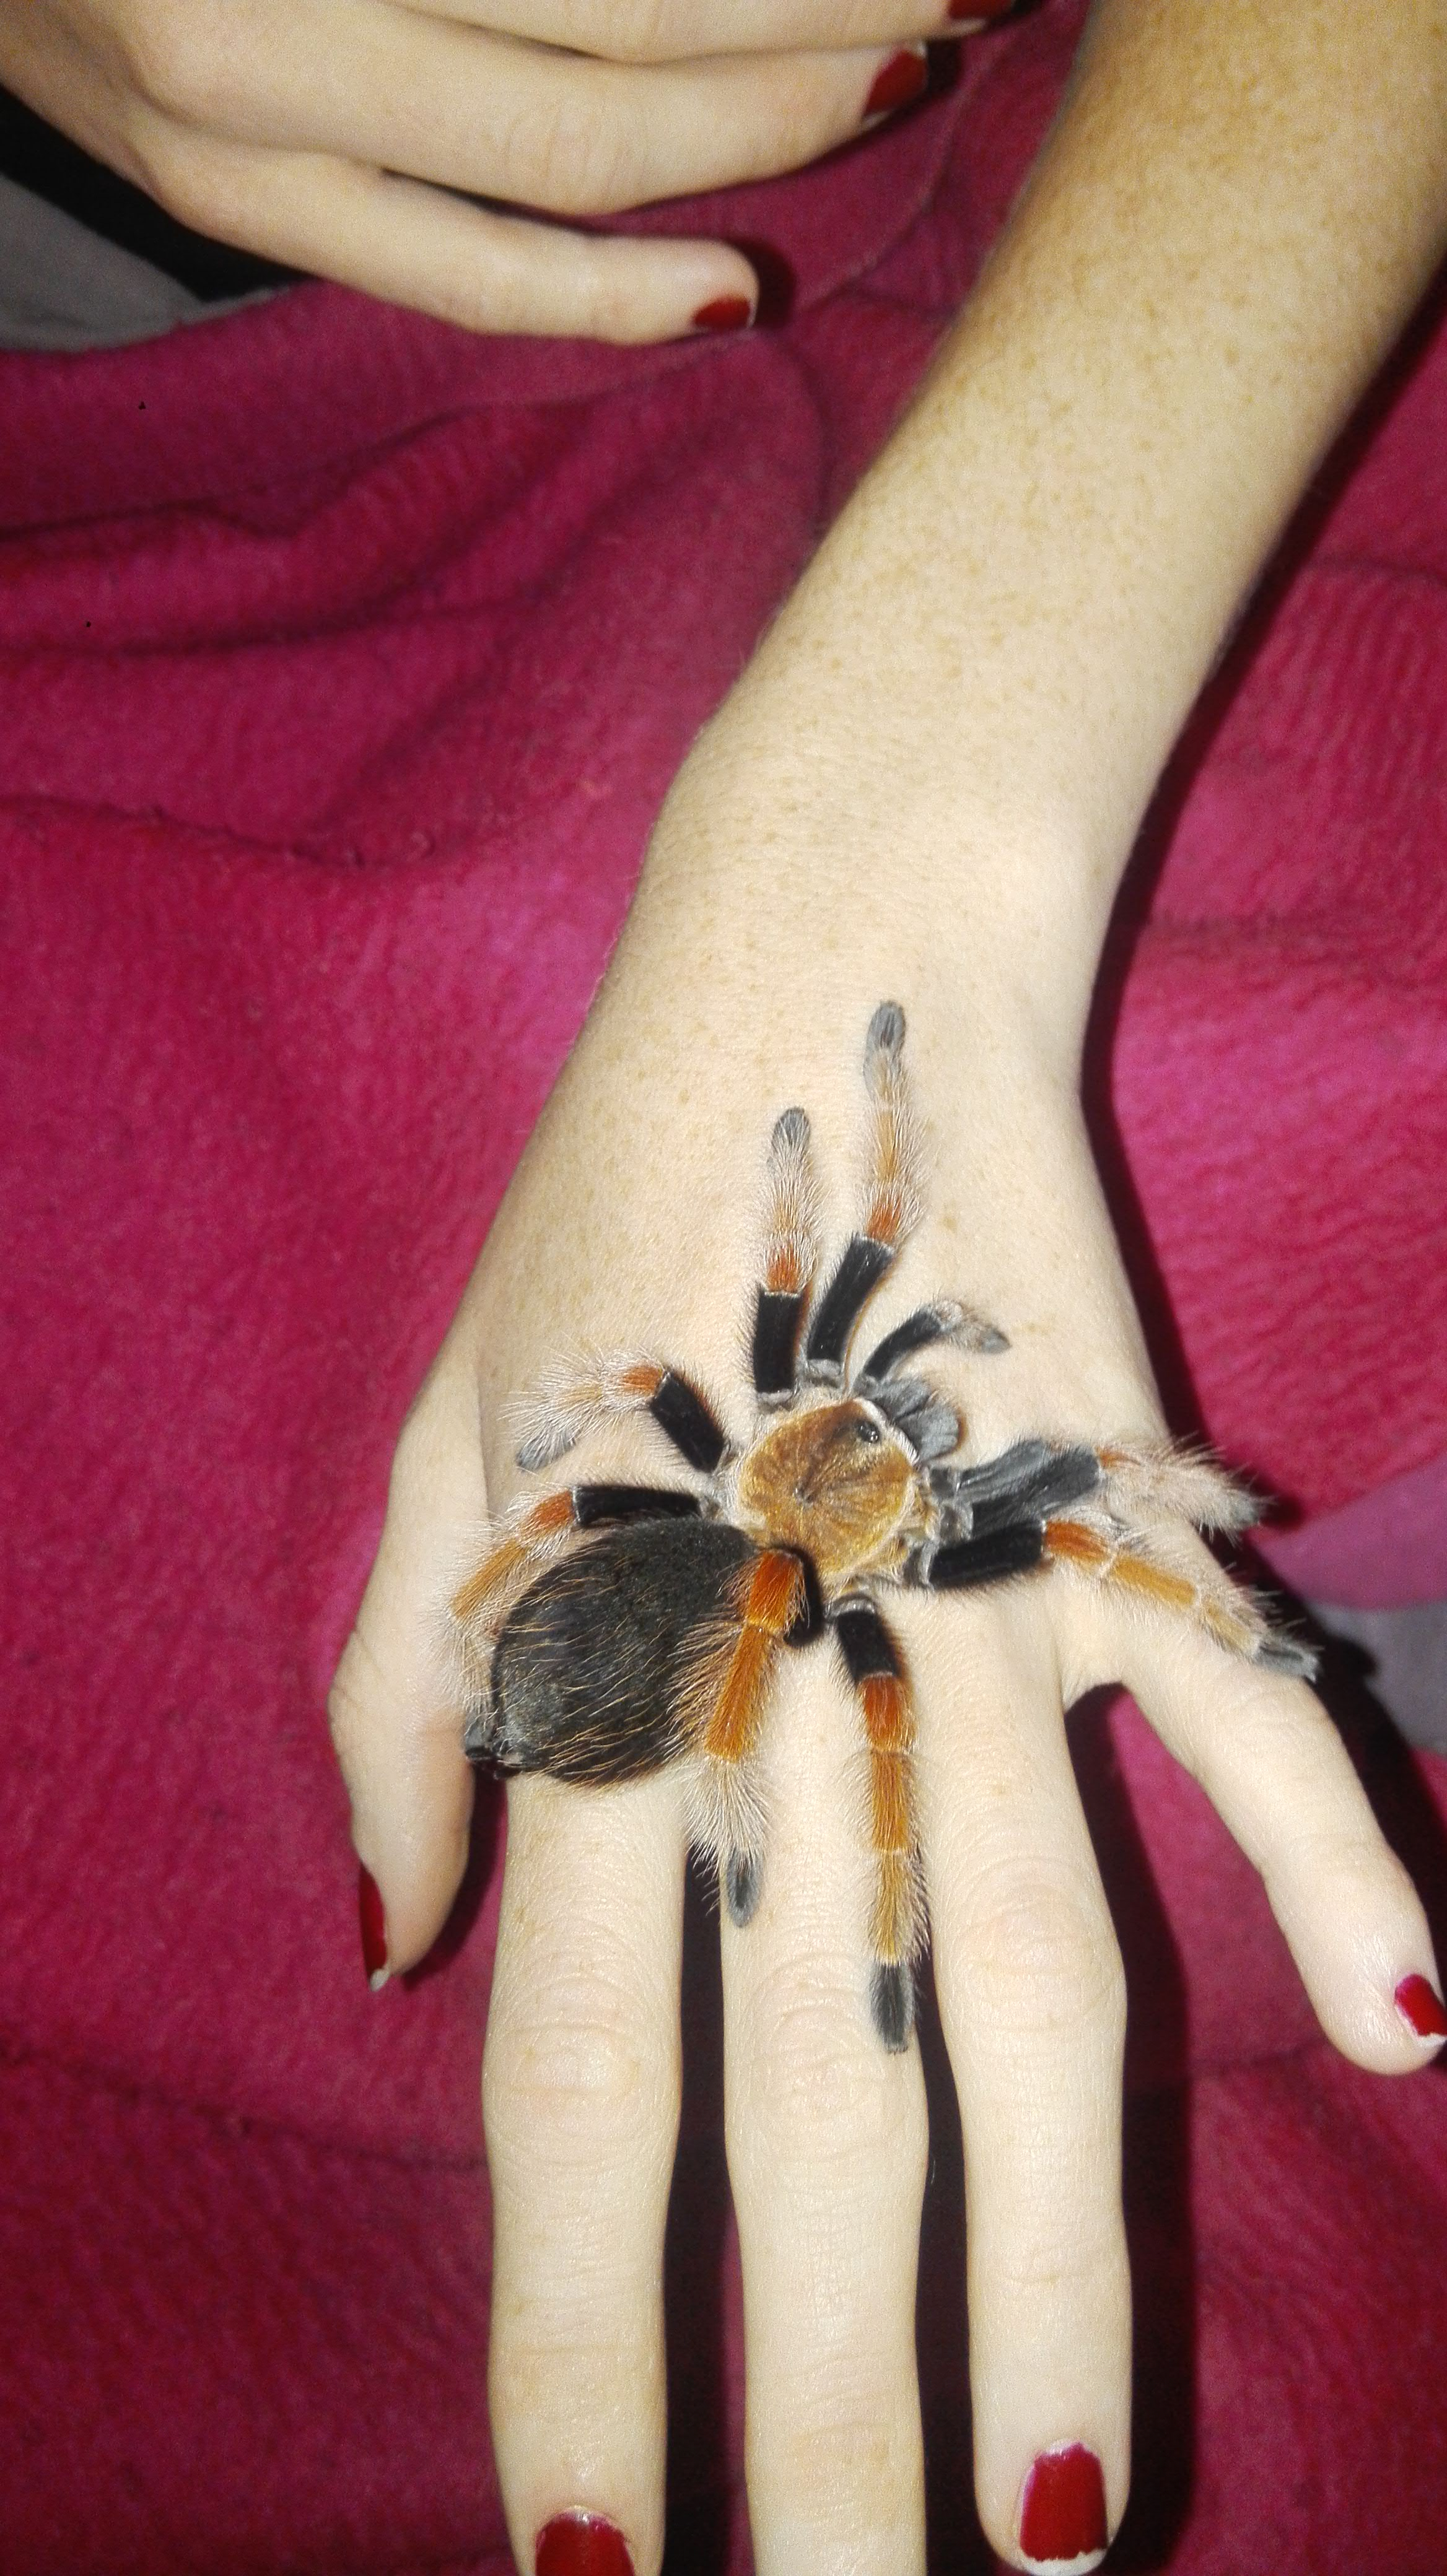 2nd of my new baby's Brachypelma Boehmei